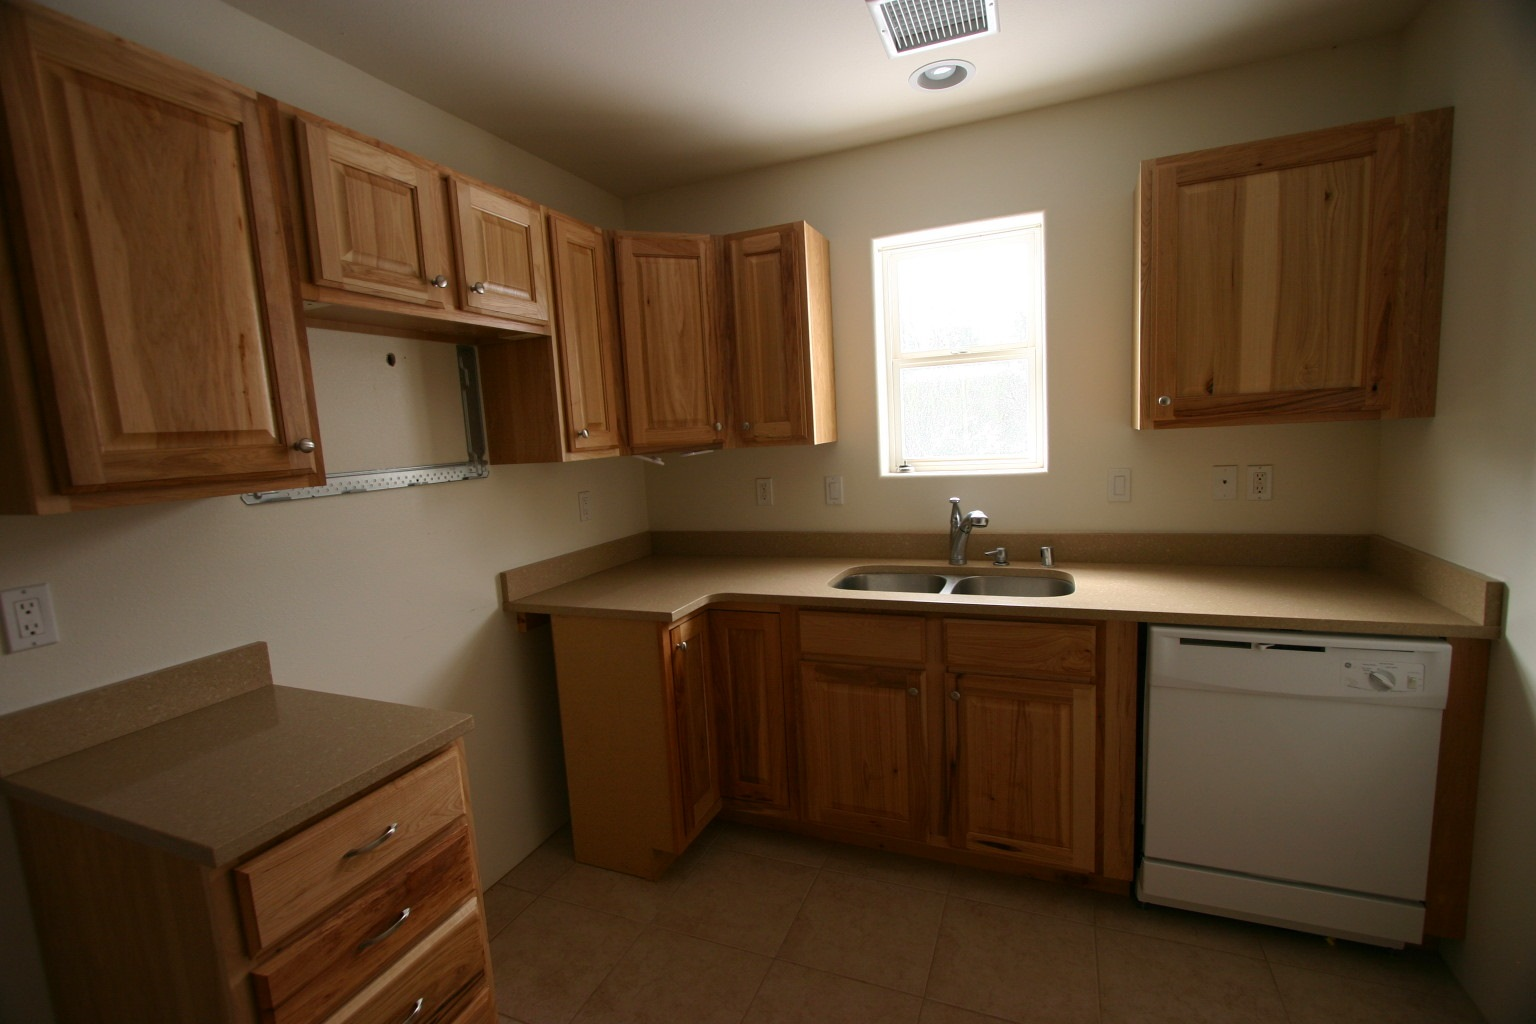 Kitchen needs refrigerator and range